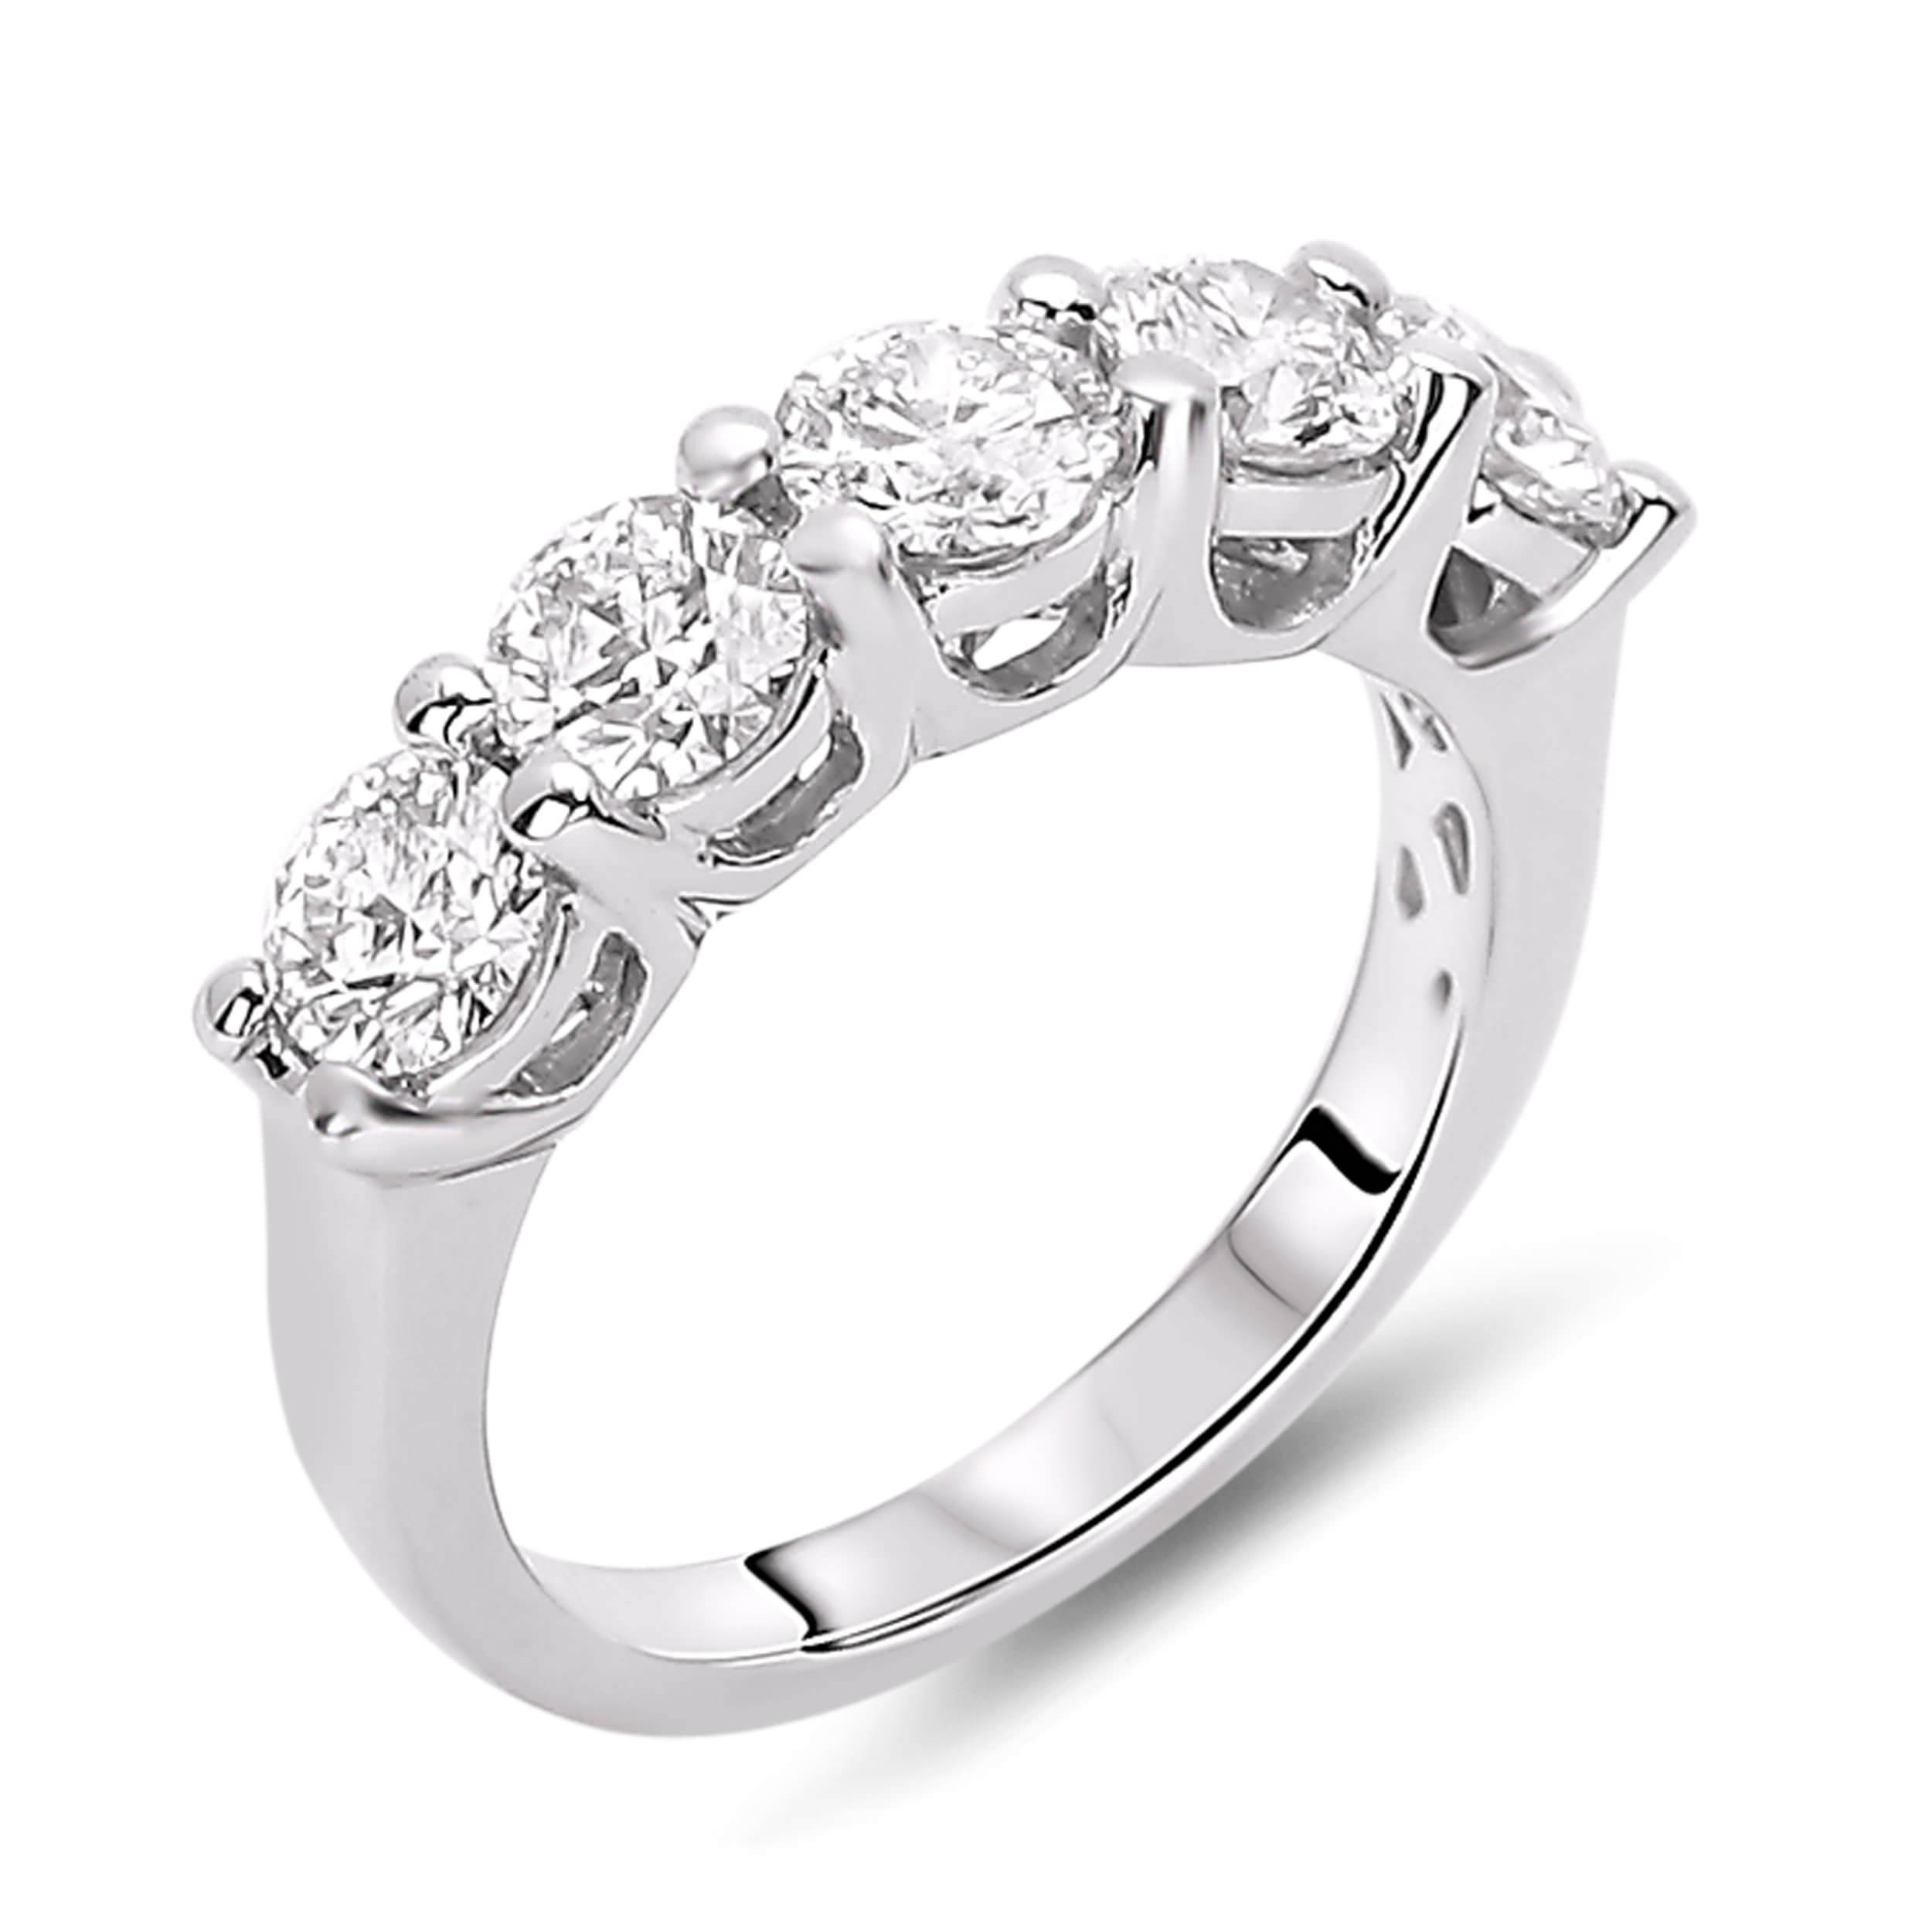 anniversary of wedding year bands deco best to regard rings with band collection diamond carat art solitaire